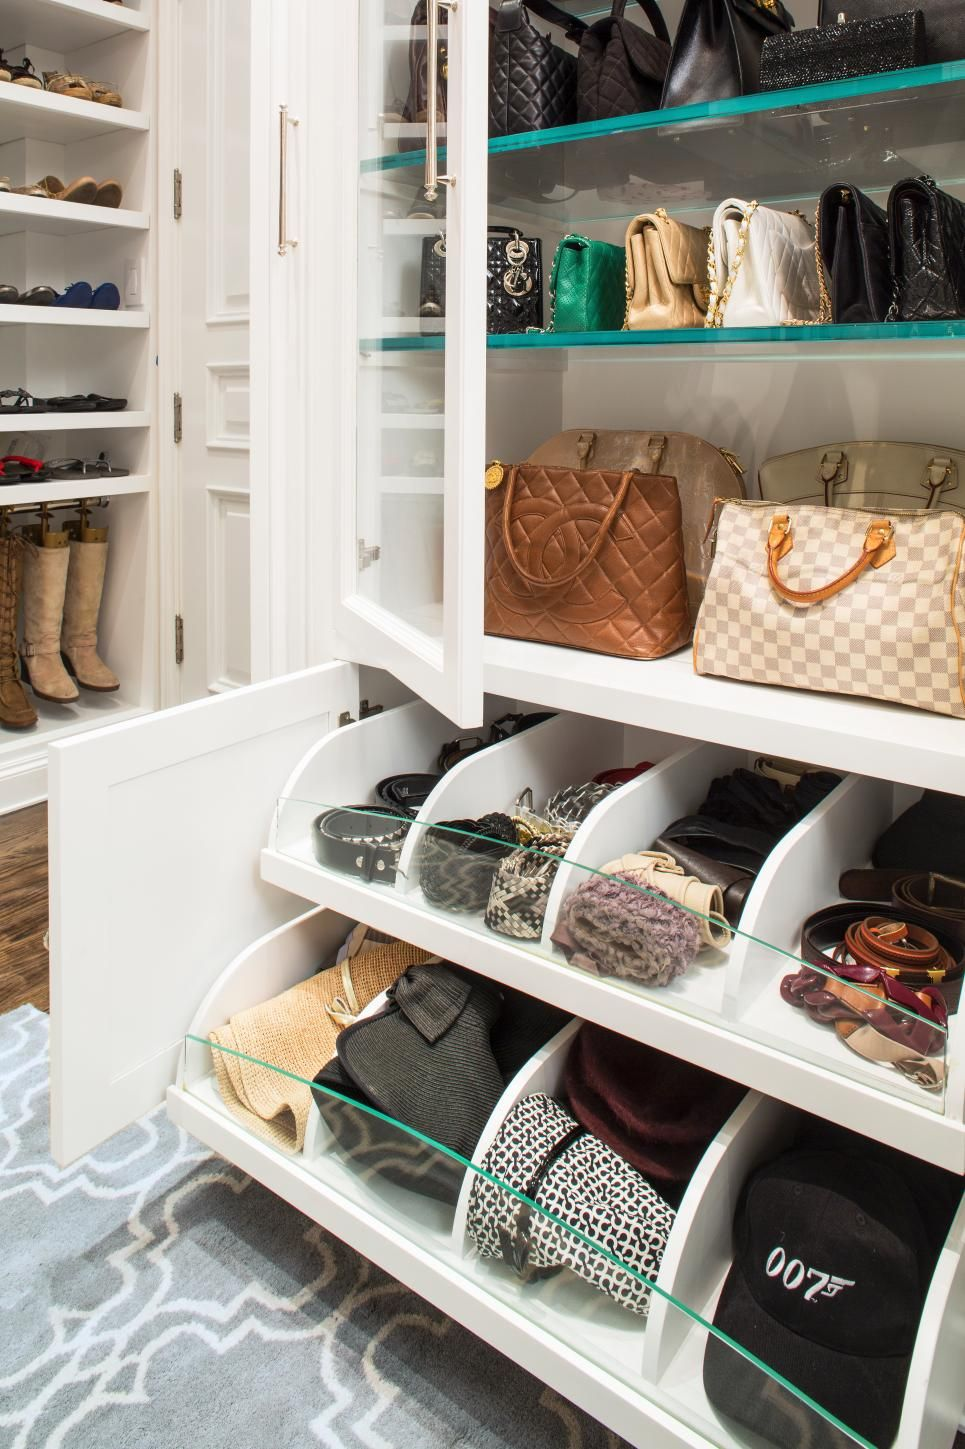 Charmant Bags, Boots, Hats And Scarves: Every Item Has Its Place In This Glamorous  Custom Closet. Pullout Drawers For Accessories And Glass Fronted Cabinet  Doors ...